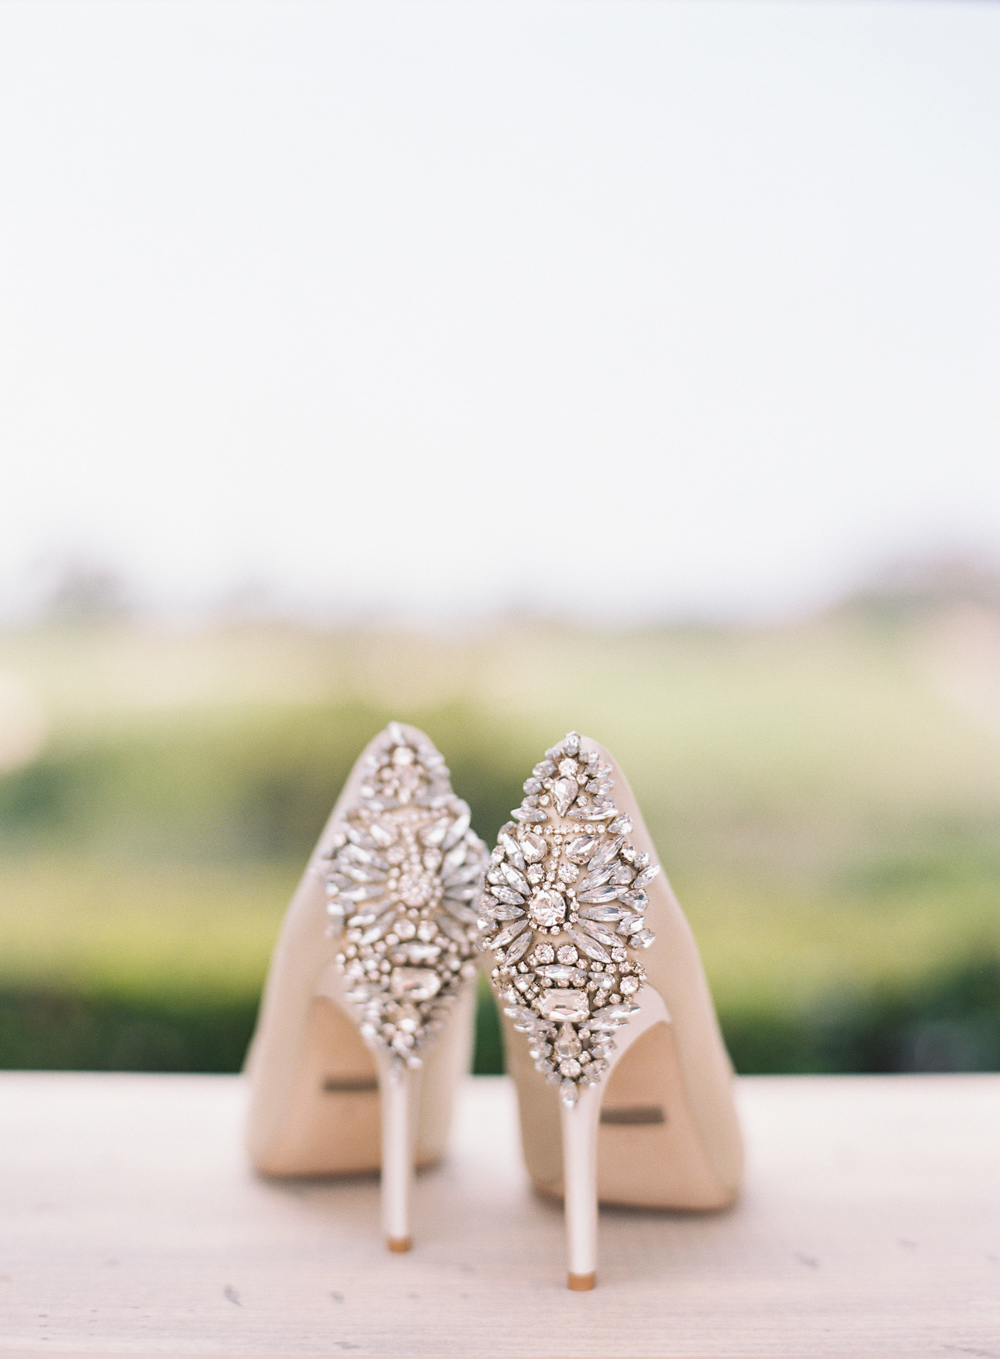 003-pelicanhill_wedding_ashleykelemen.jpg